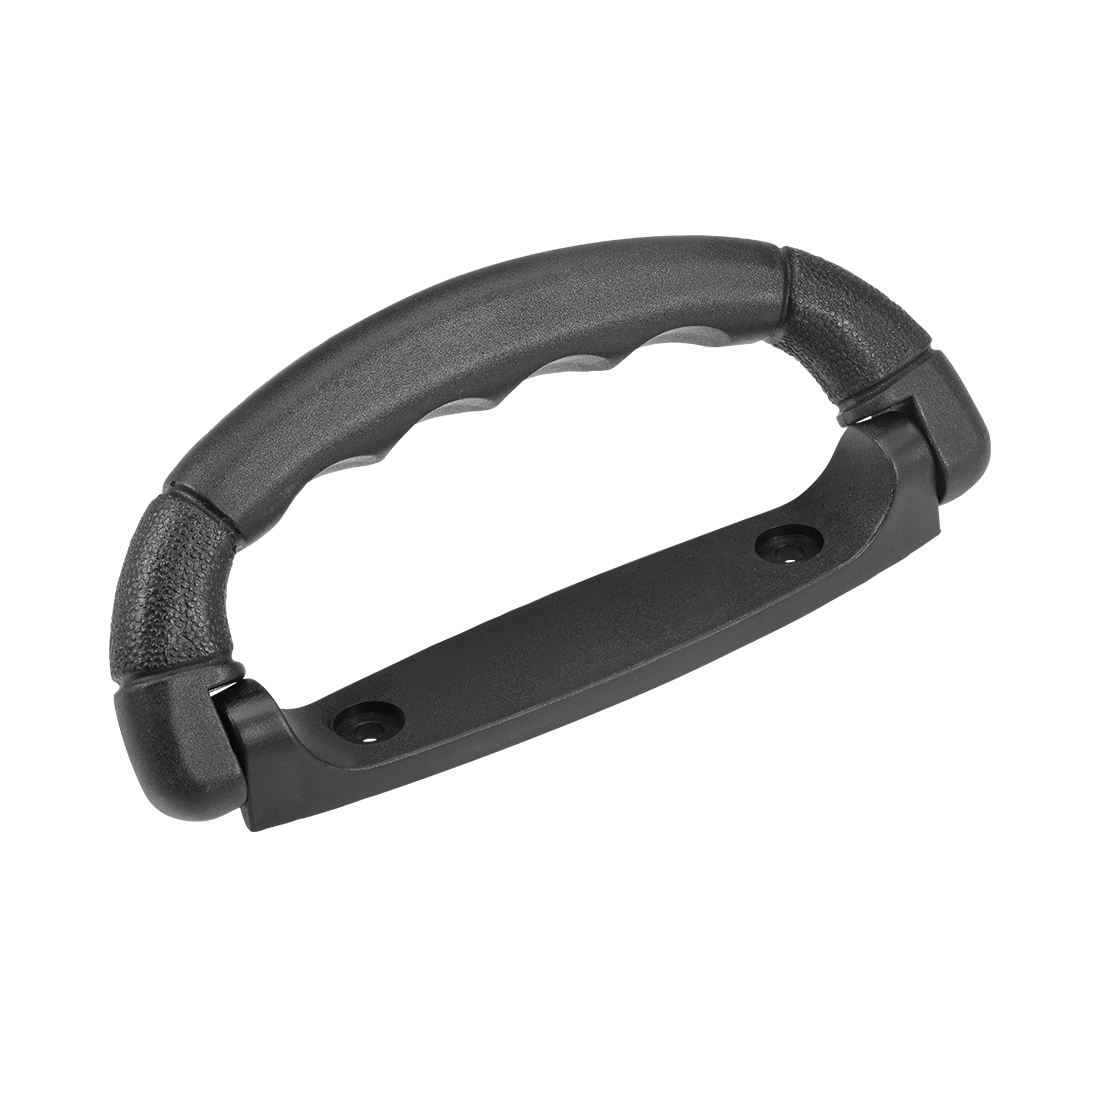 Luggage Handle Pull Plastic 6.3-Inch Length Luggage Suitcase Handle Grip Black